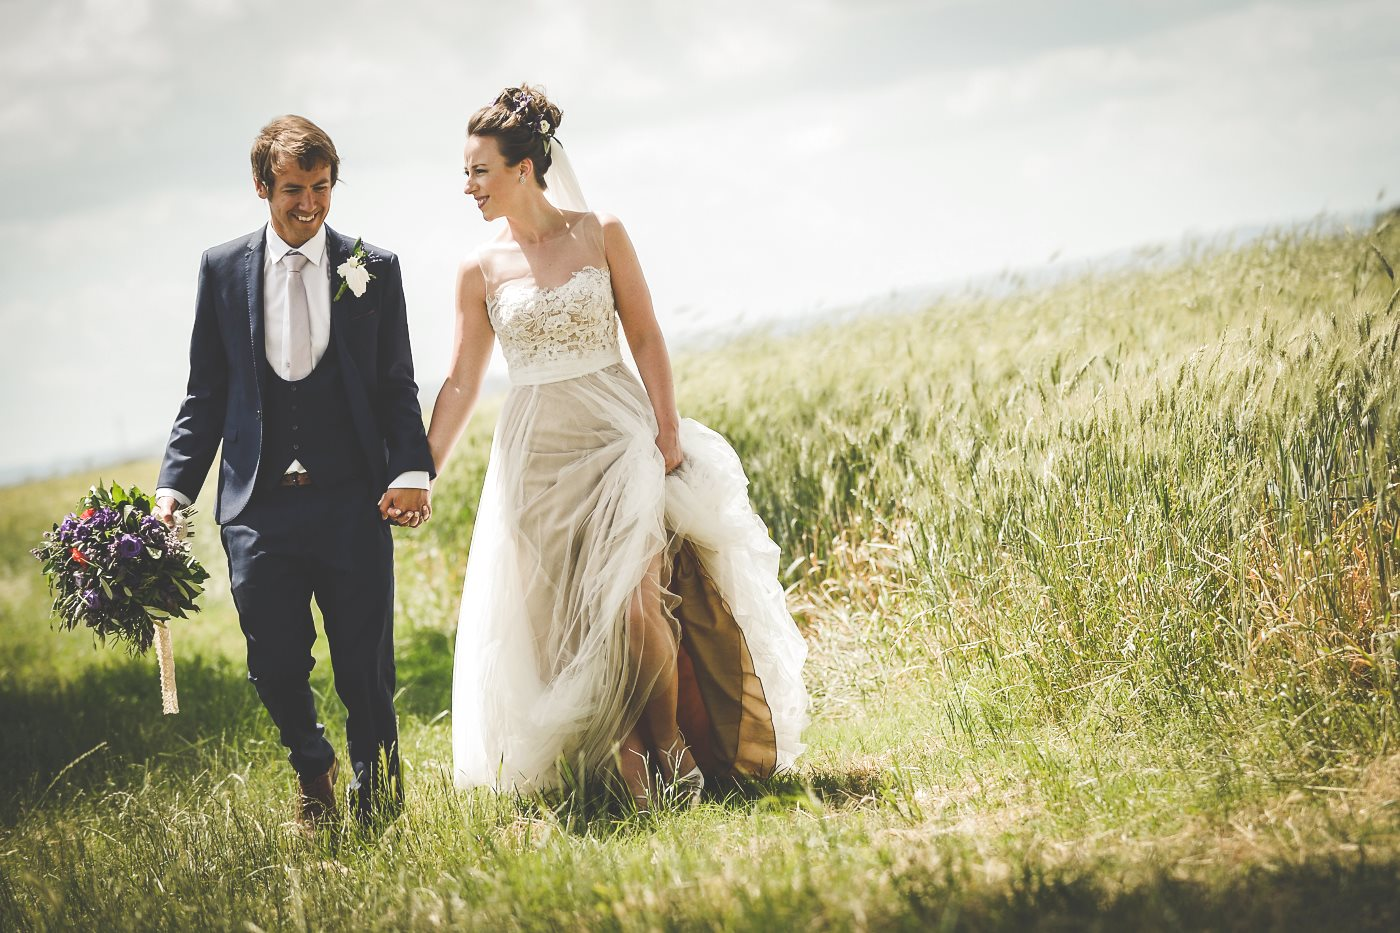 photographer_wedding_cortona_13.jpg